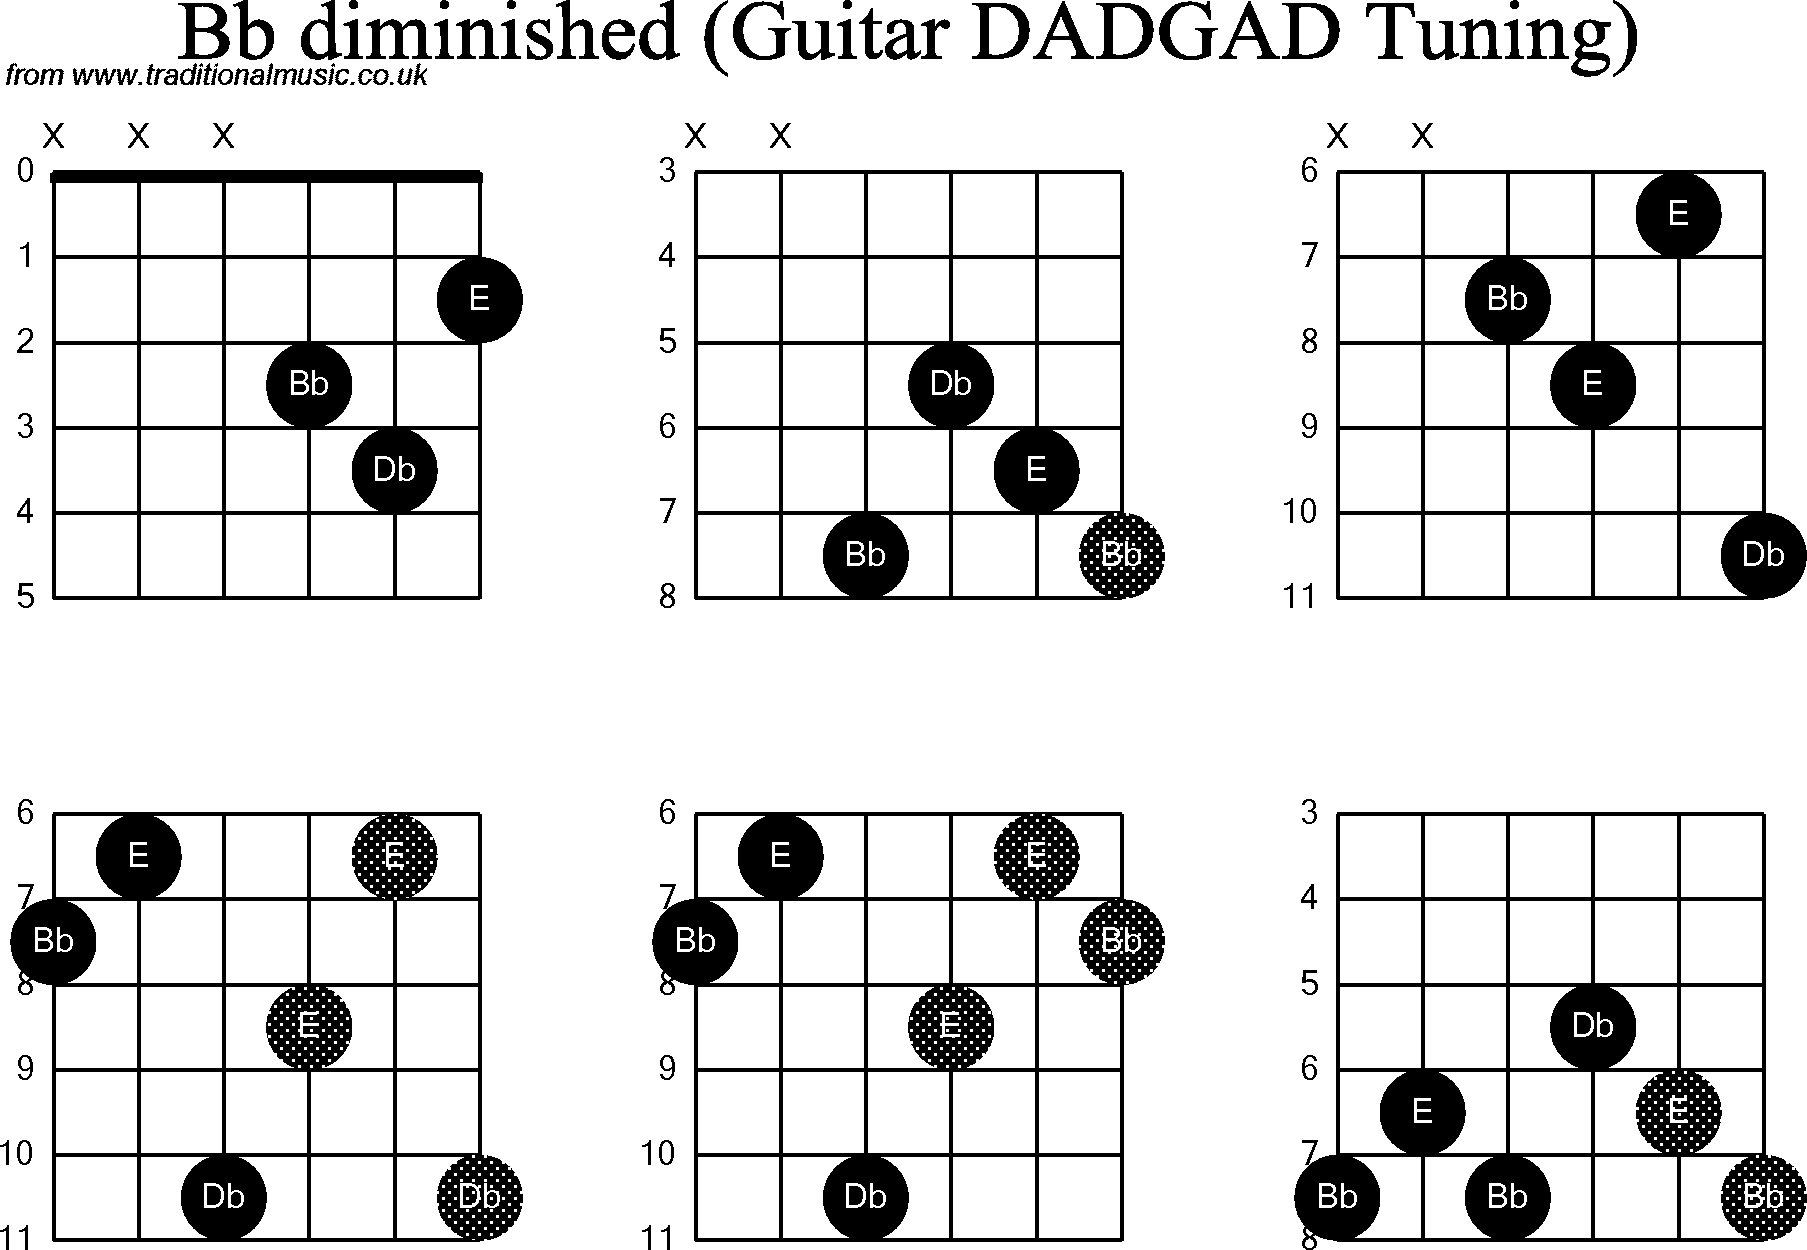 Chord diagrams D Modal Guitar( DADGAD): Bb Diminished